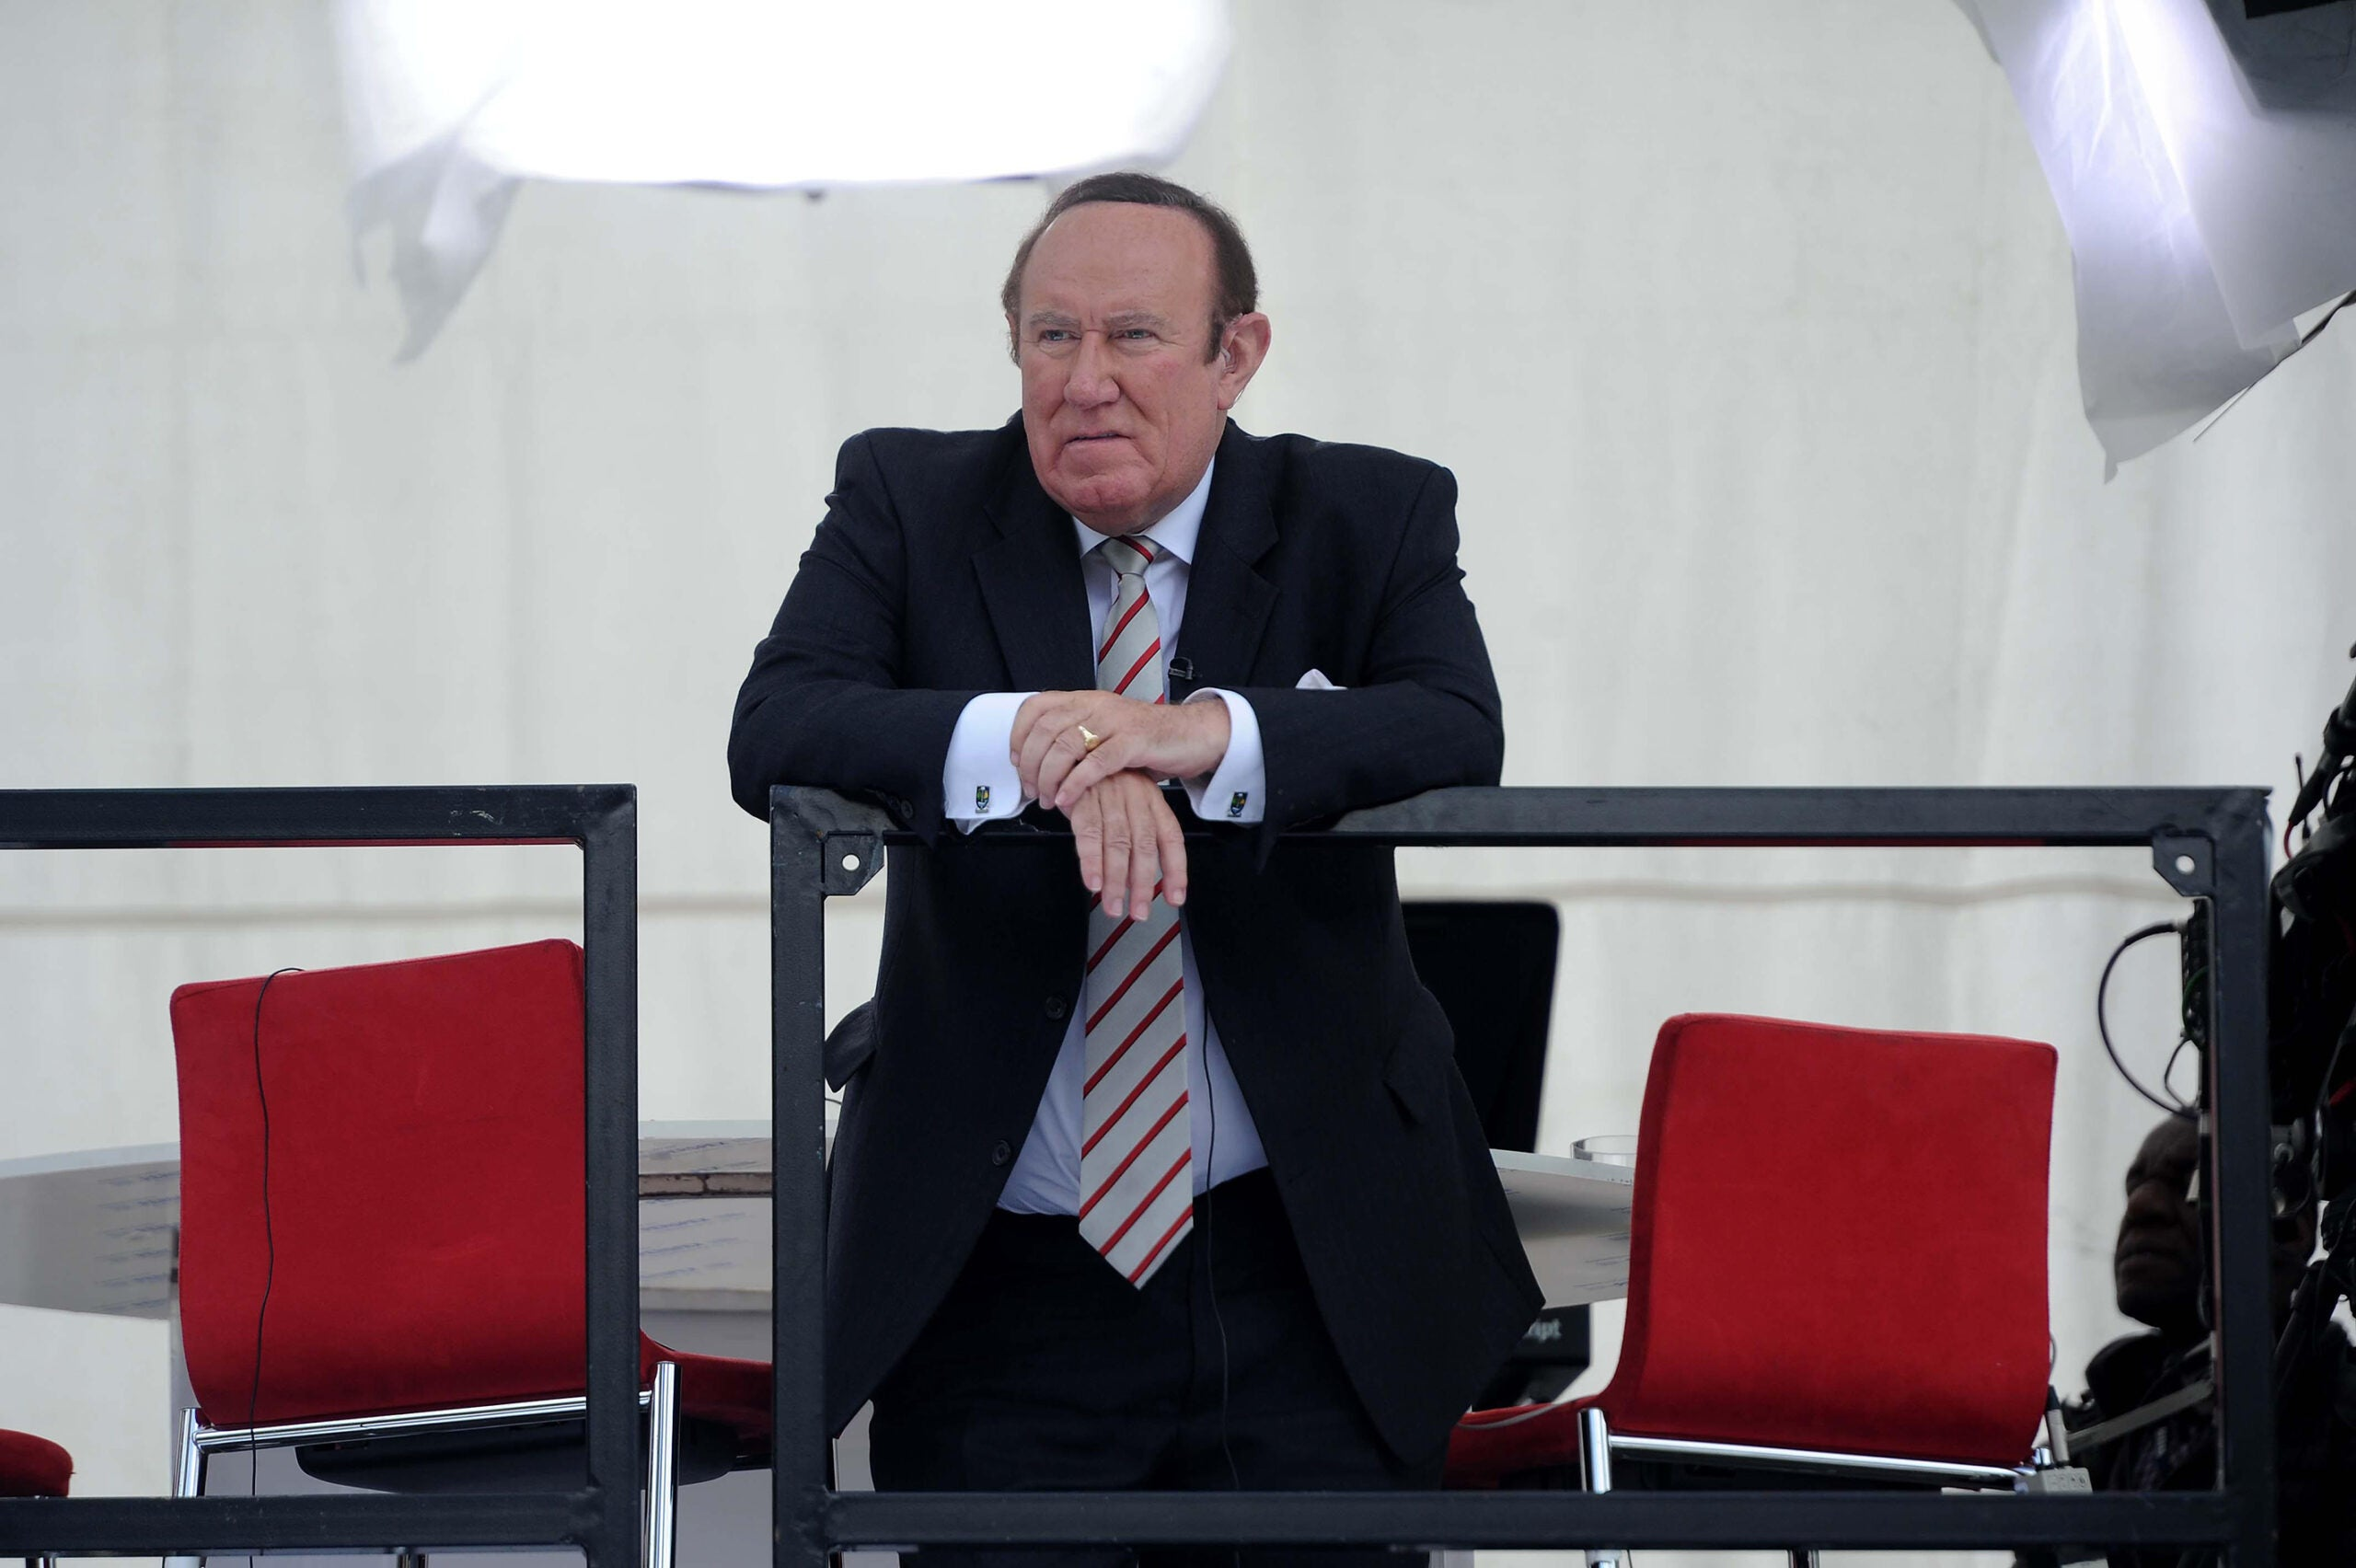 Andrew Neil's vision of GB News was doomed to fail